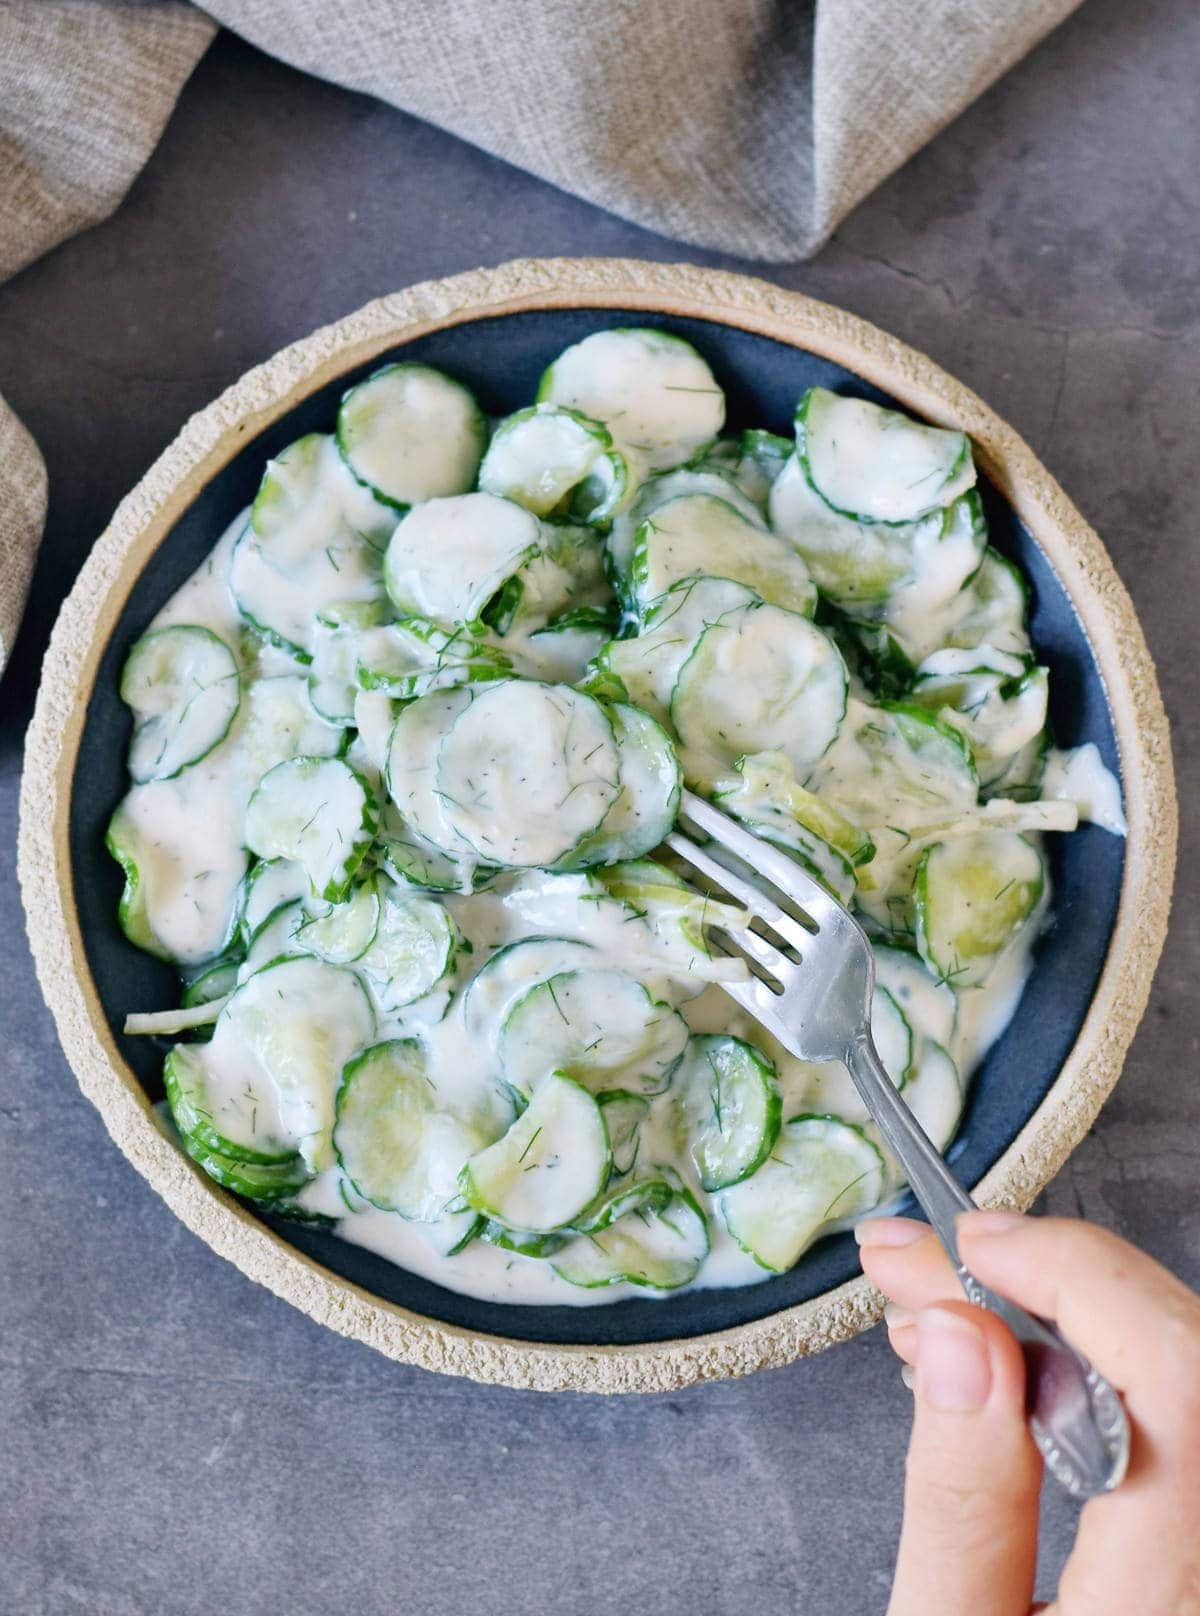 Hand holding fork submerged in creamy cucumber and onion salad